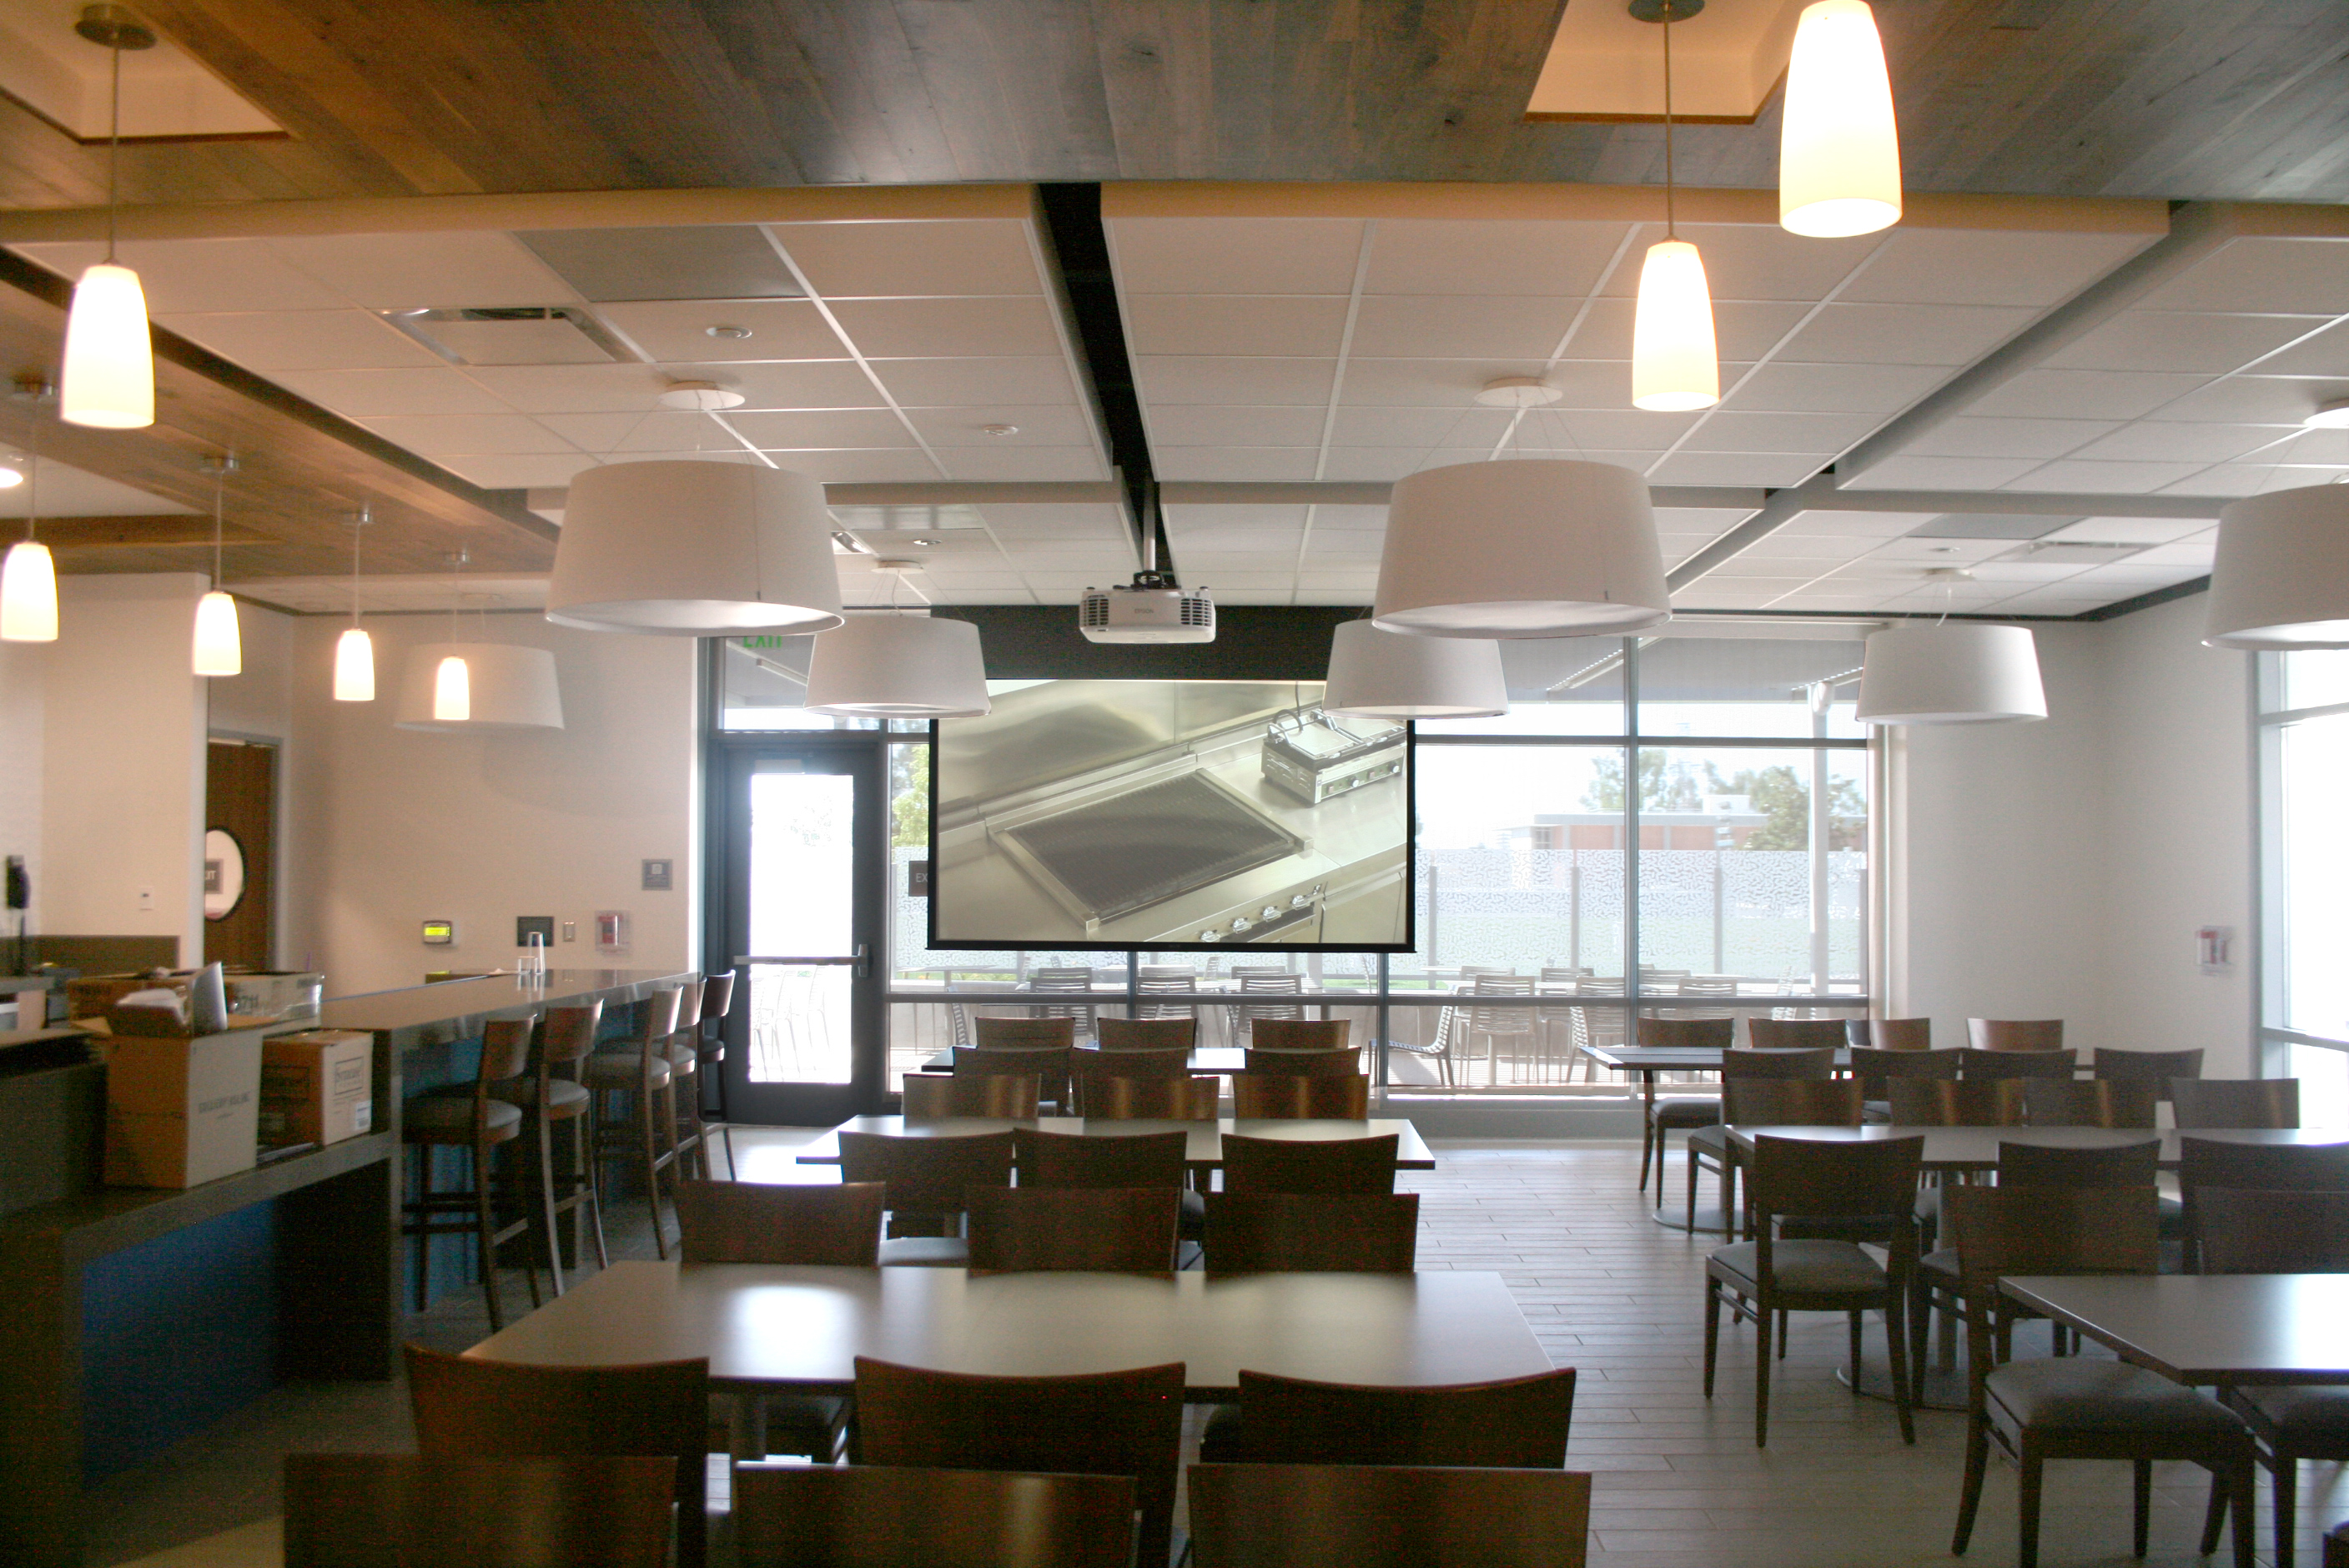 Culinary classroom with projector displaying live feeds from the PTZ camera system